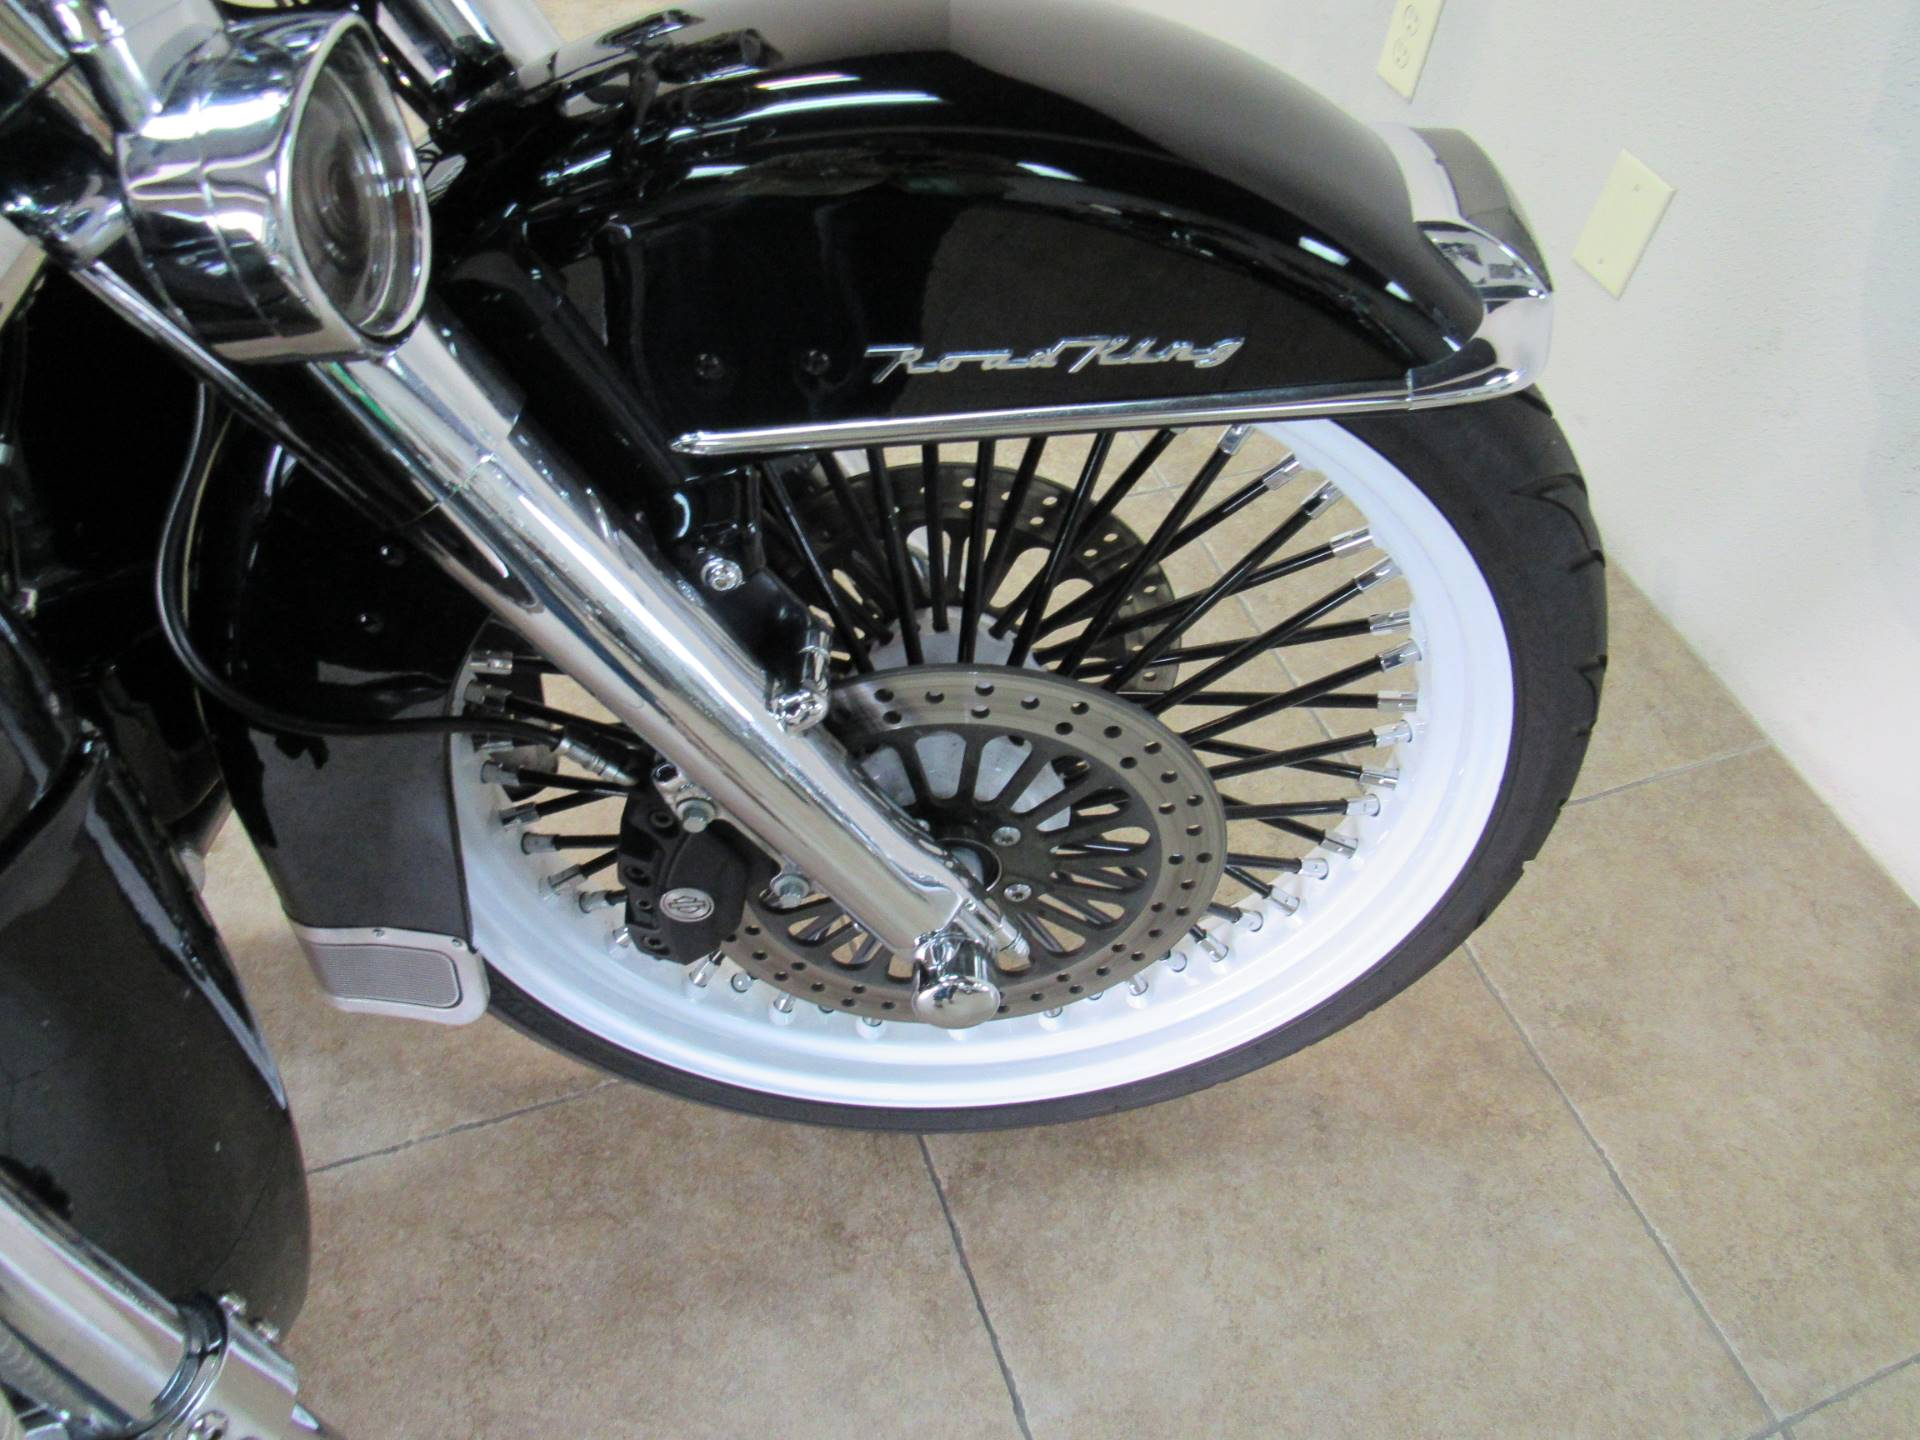 2008 Harley-Davidson Road King® in Temecula, California - Photo 7